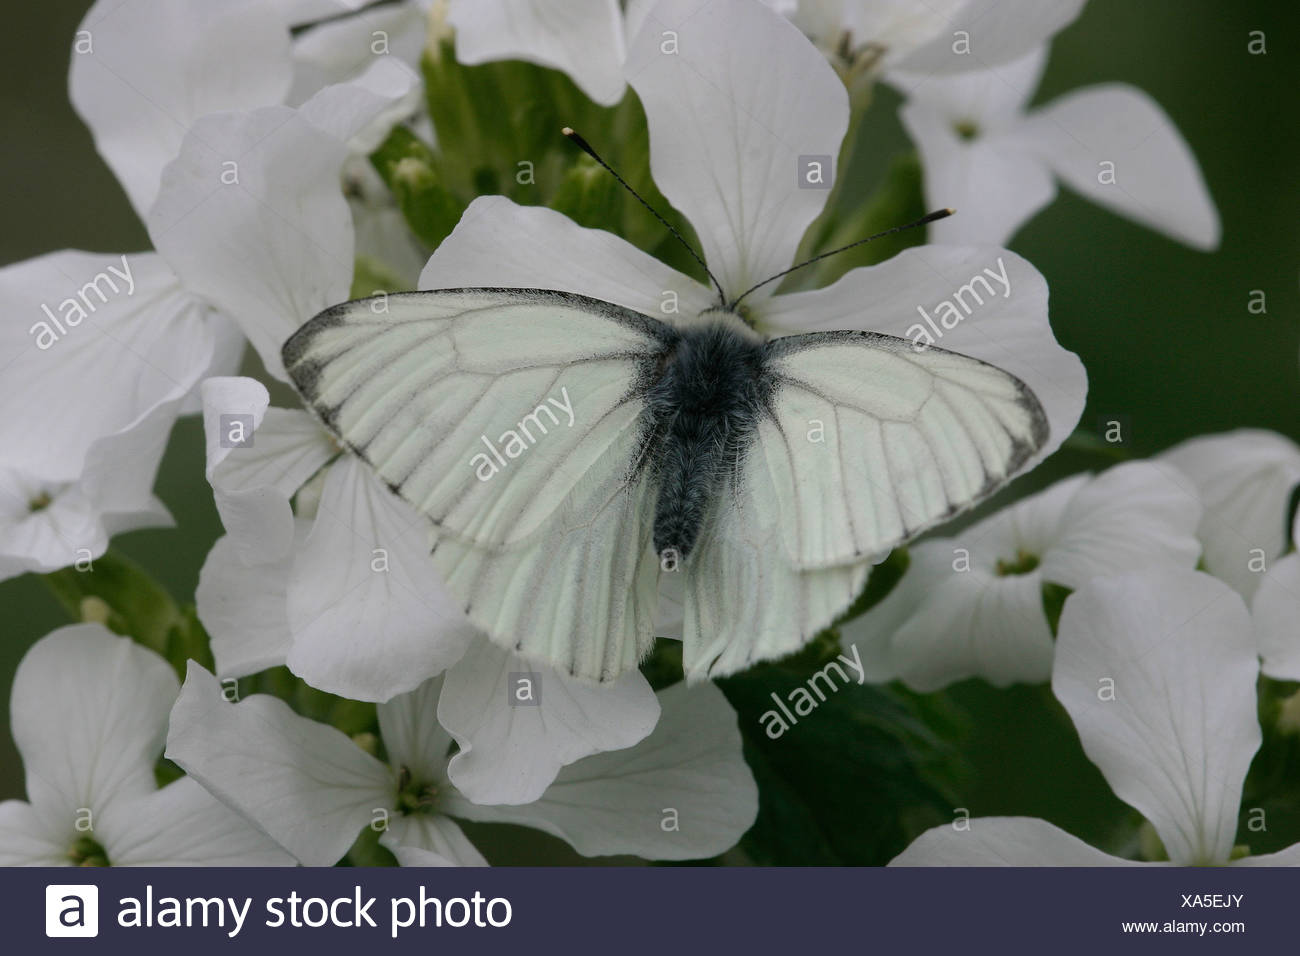 Dark-veined white drinking nectar from the flower of a white Lunaria annua - Stock Image